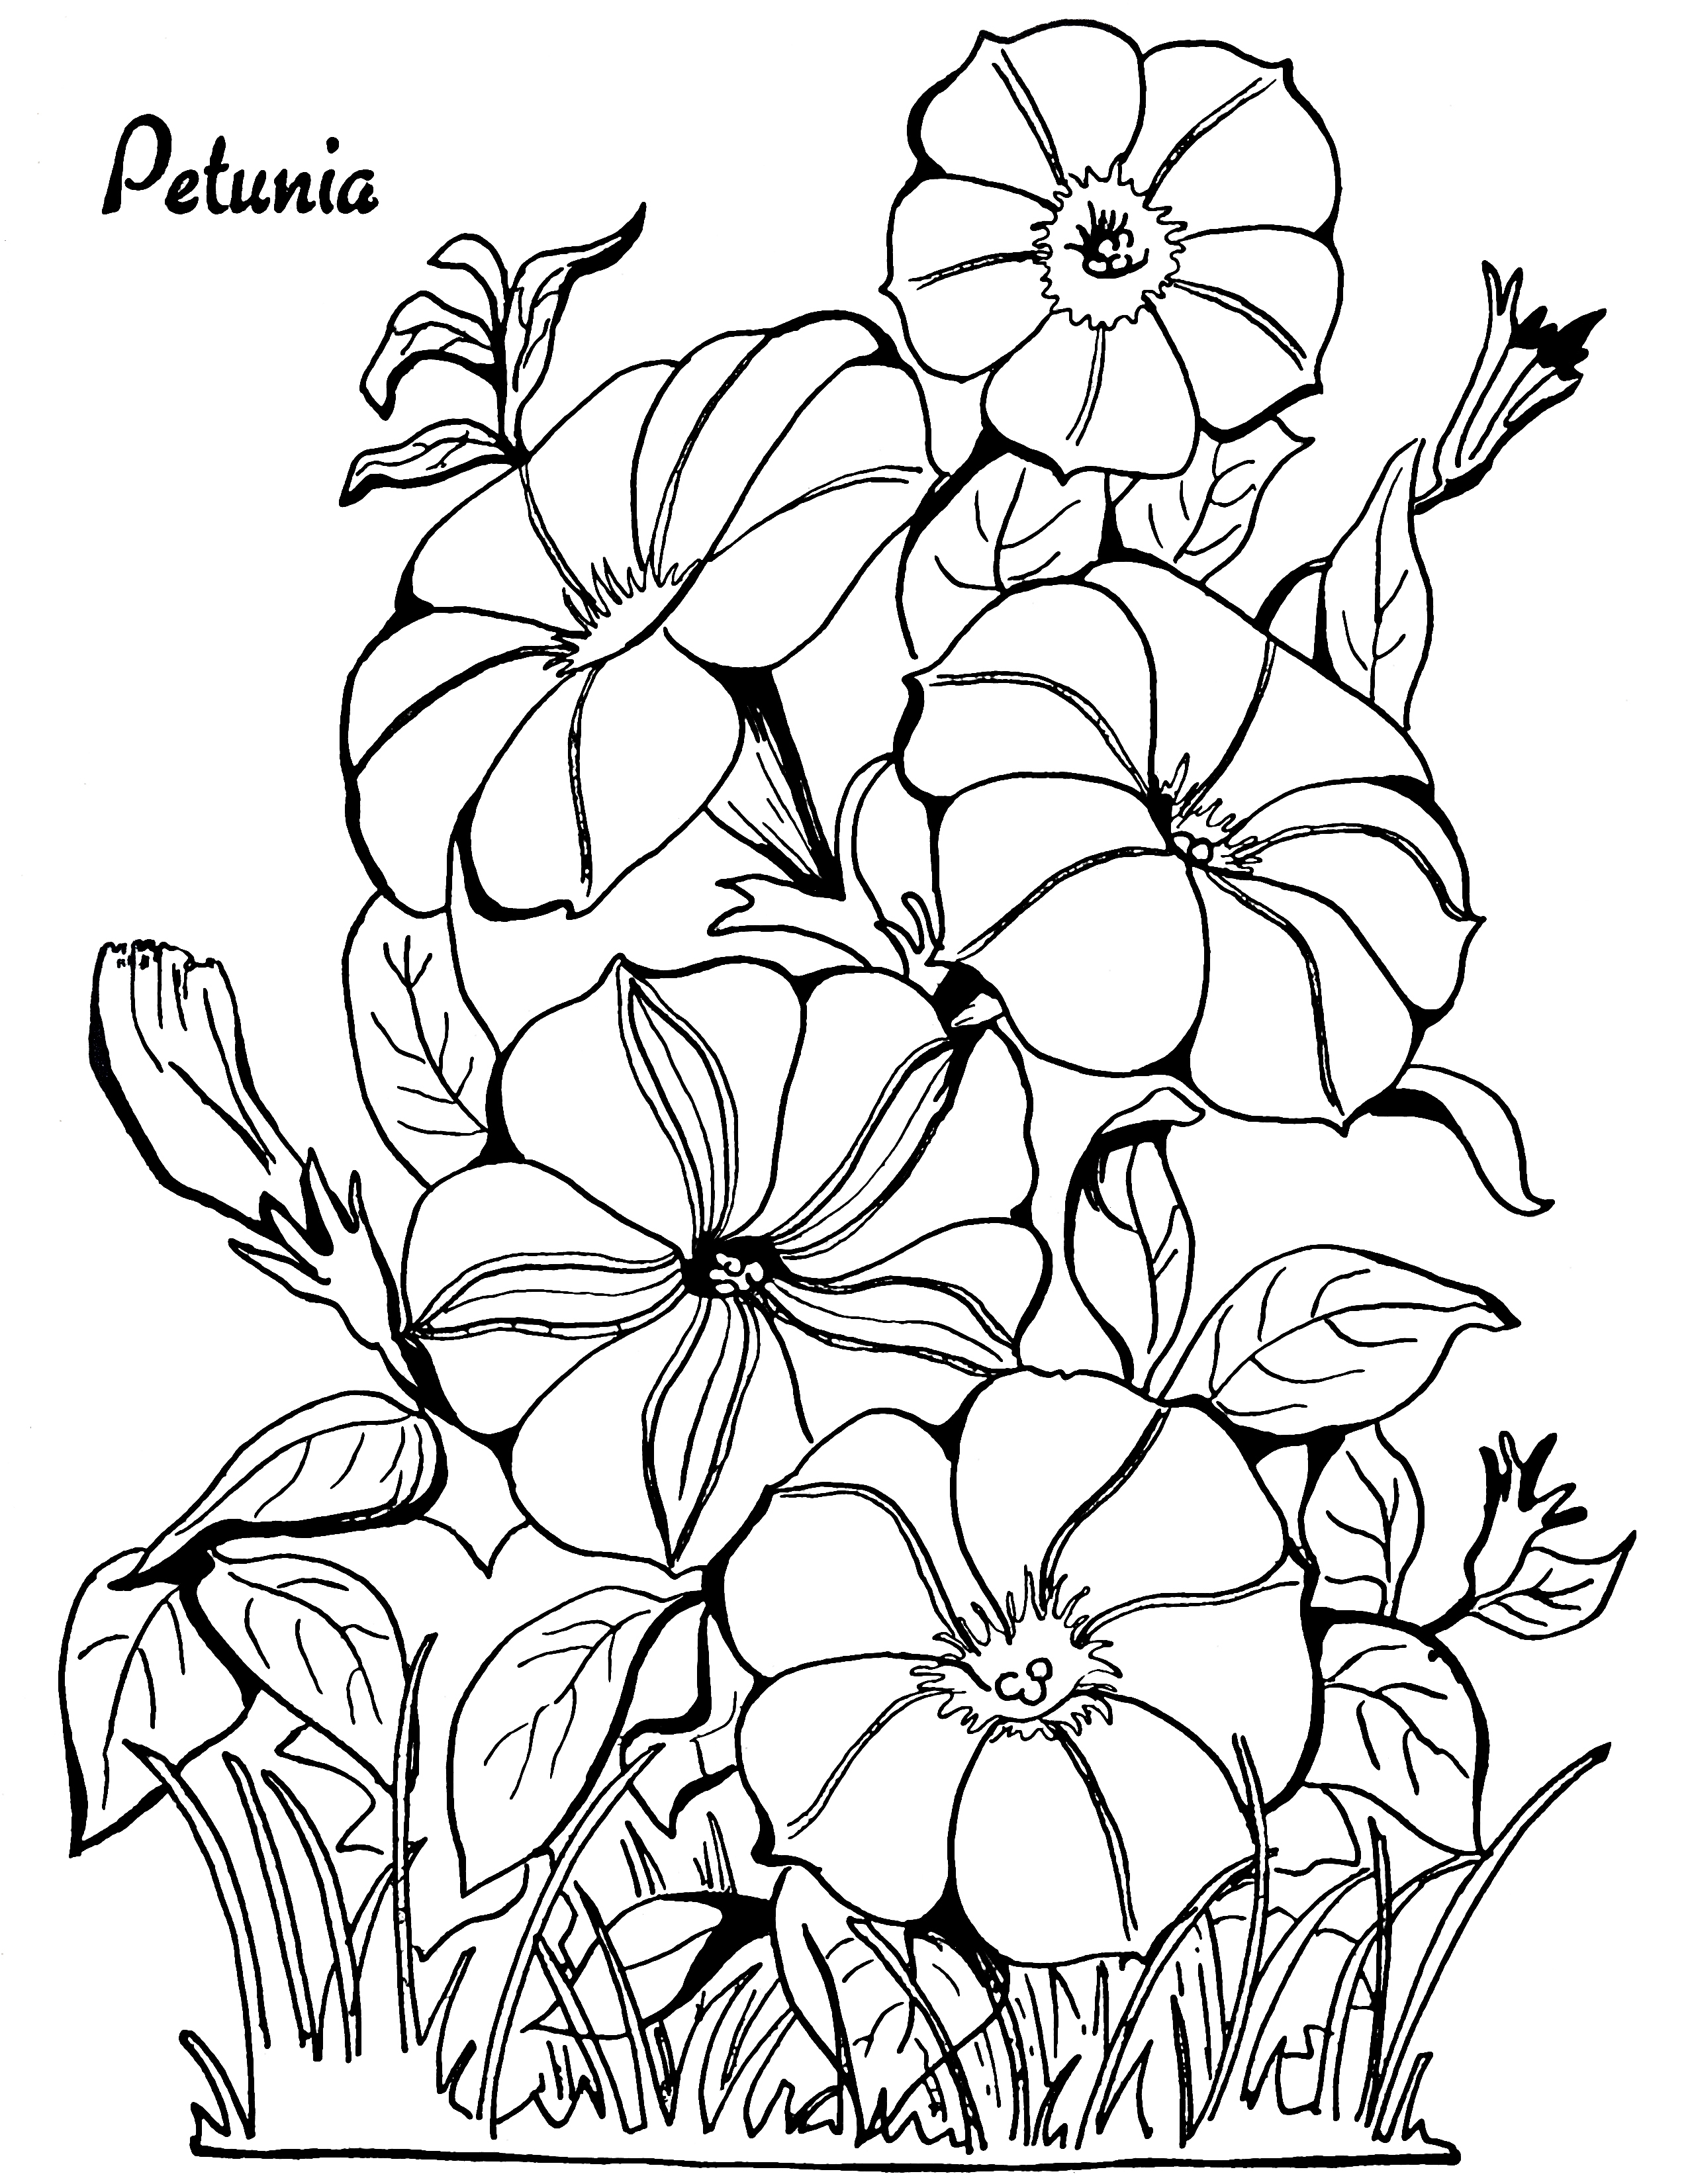 coloring pages for adults flowers flower coloring pages for adults best coloring pages for for flowers pages coloring adults